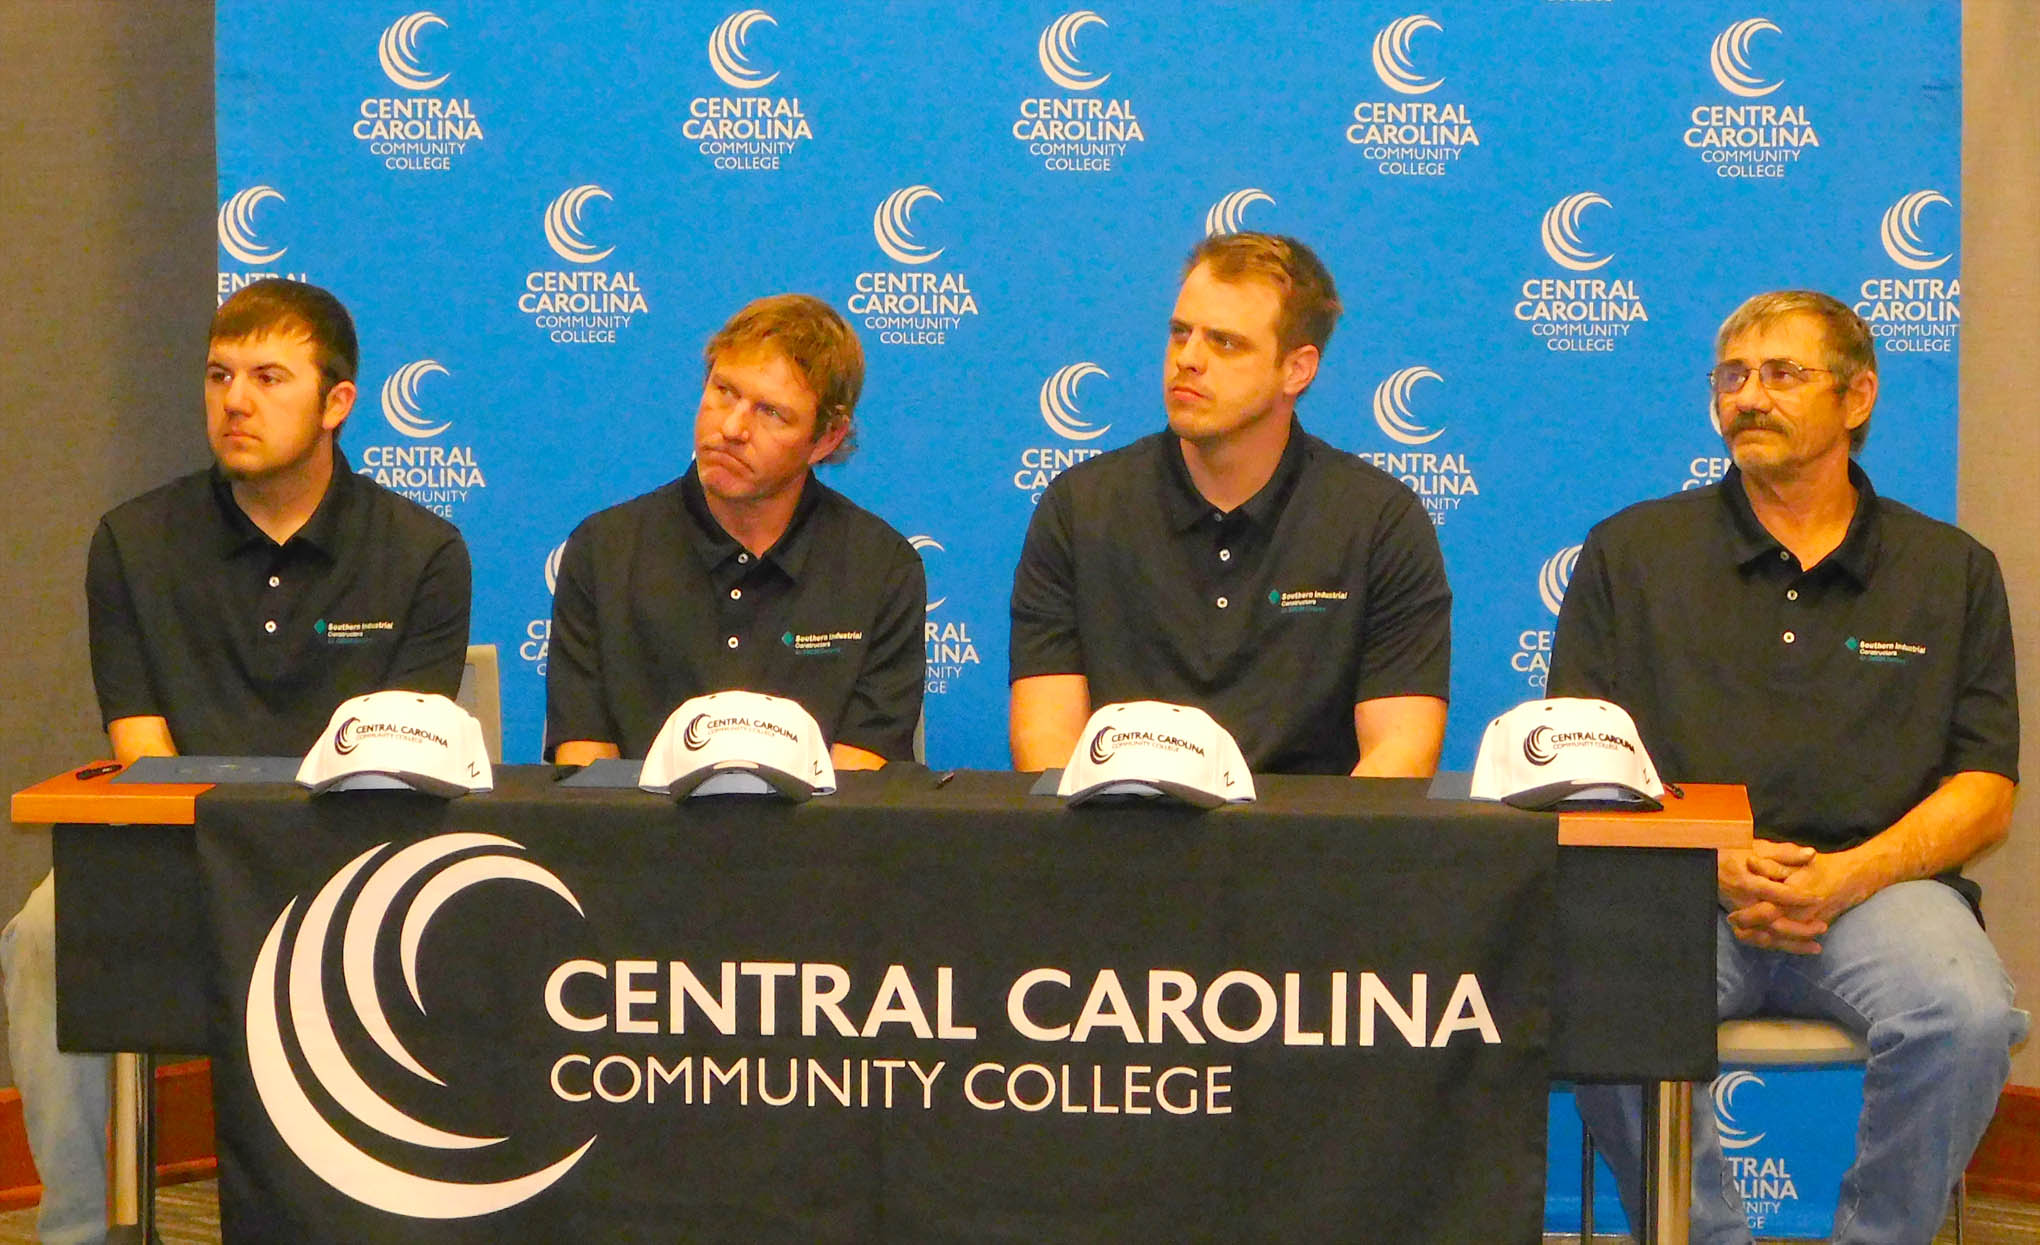 Click to enlarge,  Central Carolina Community College has joined with Southern Industrial Constructors and 3M to begin the new Southern Industrial Apprenticeship Program. The new apprentices are pictured, left to right: Mason Hege, Daniel Mize, Clifton Banner, and Garry Krontz.